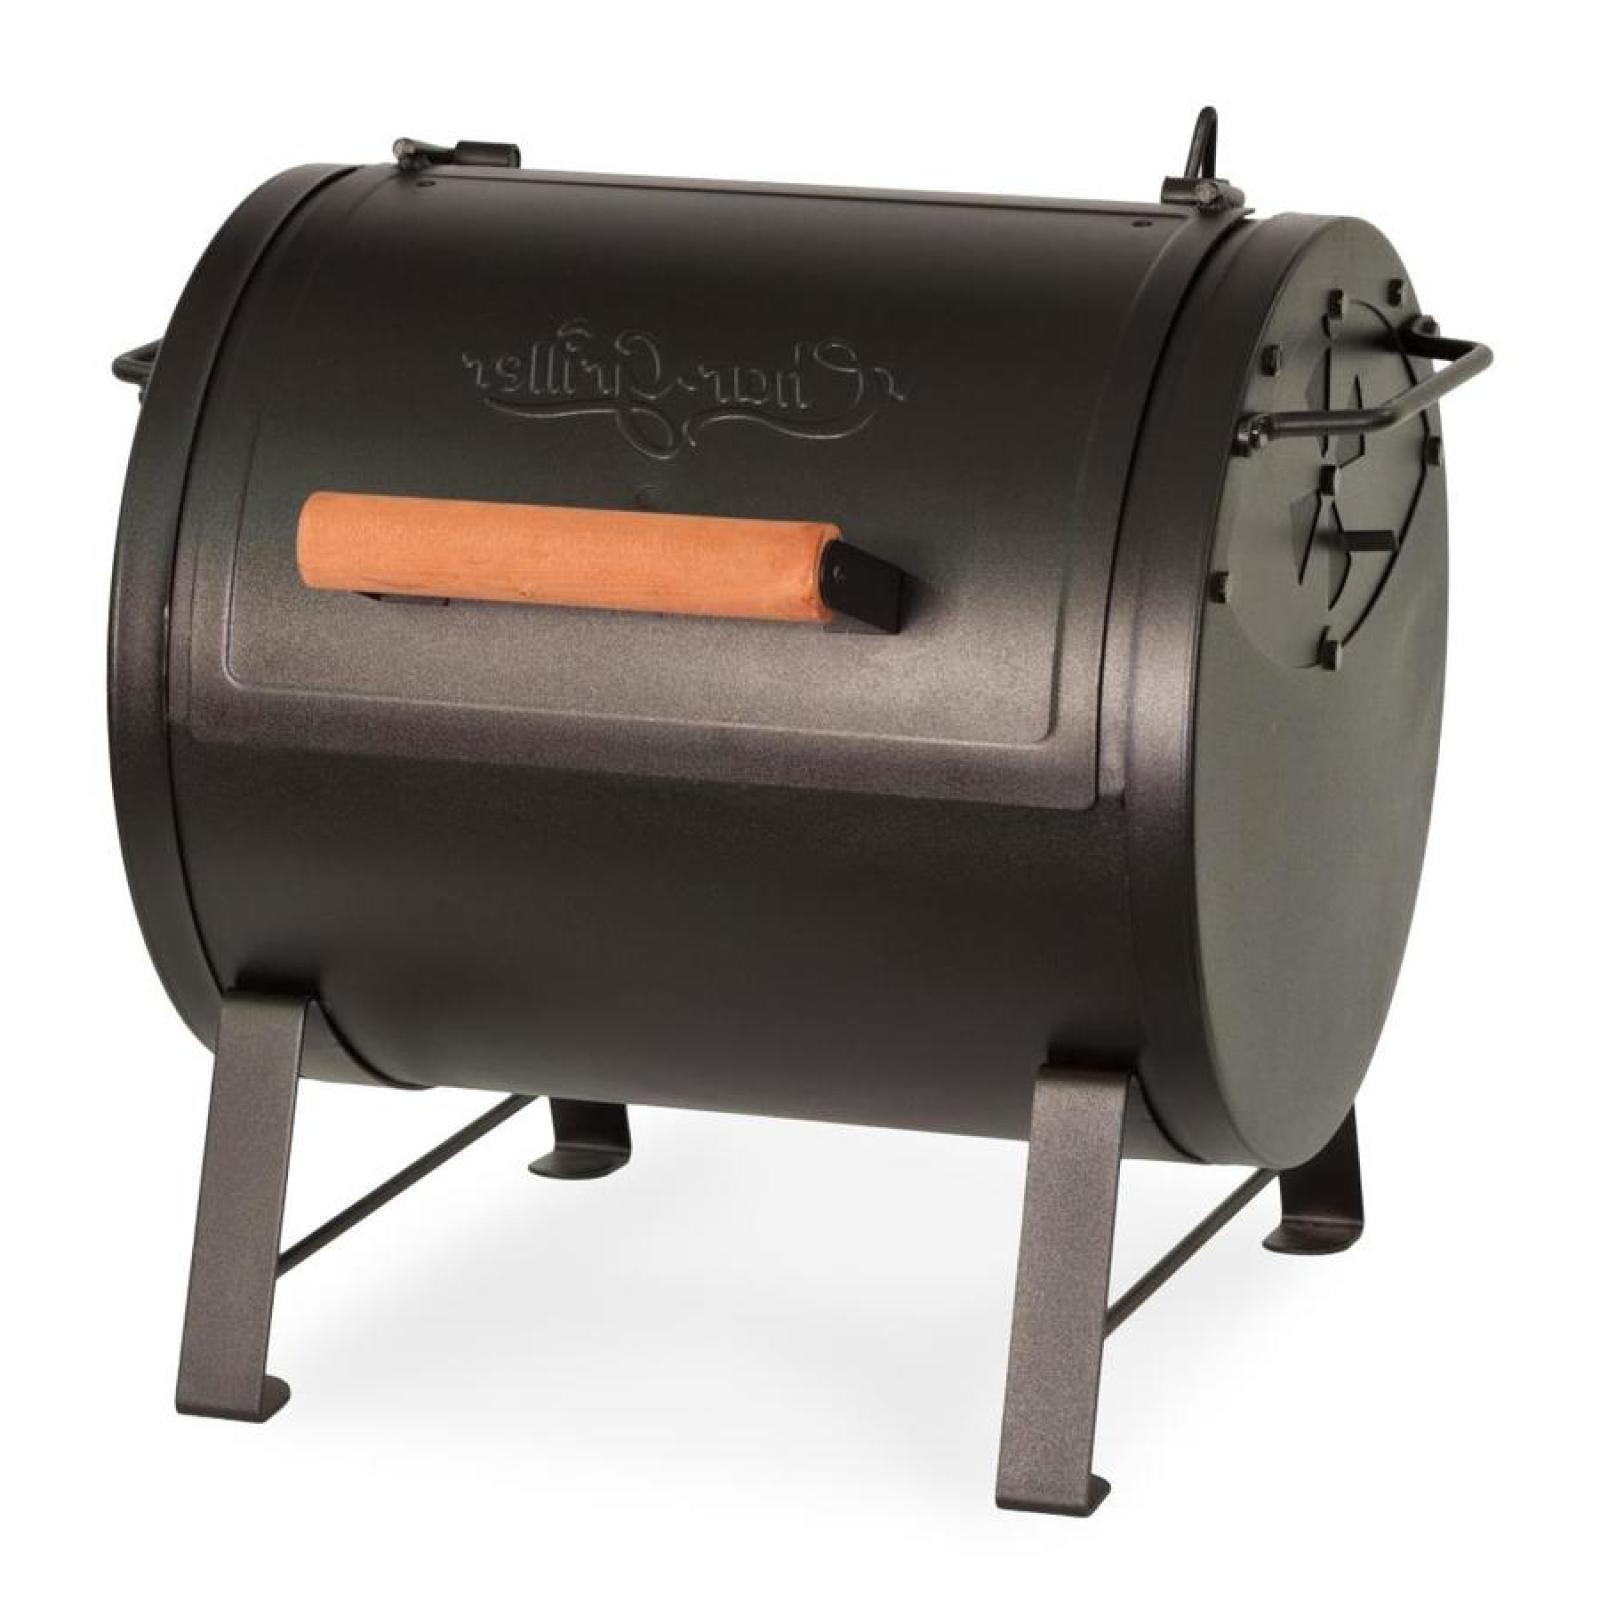 Char-Griller Multi Function 250-sq in Portable Charcoal Gril